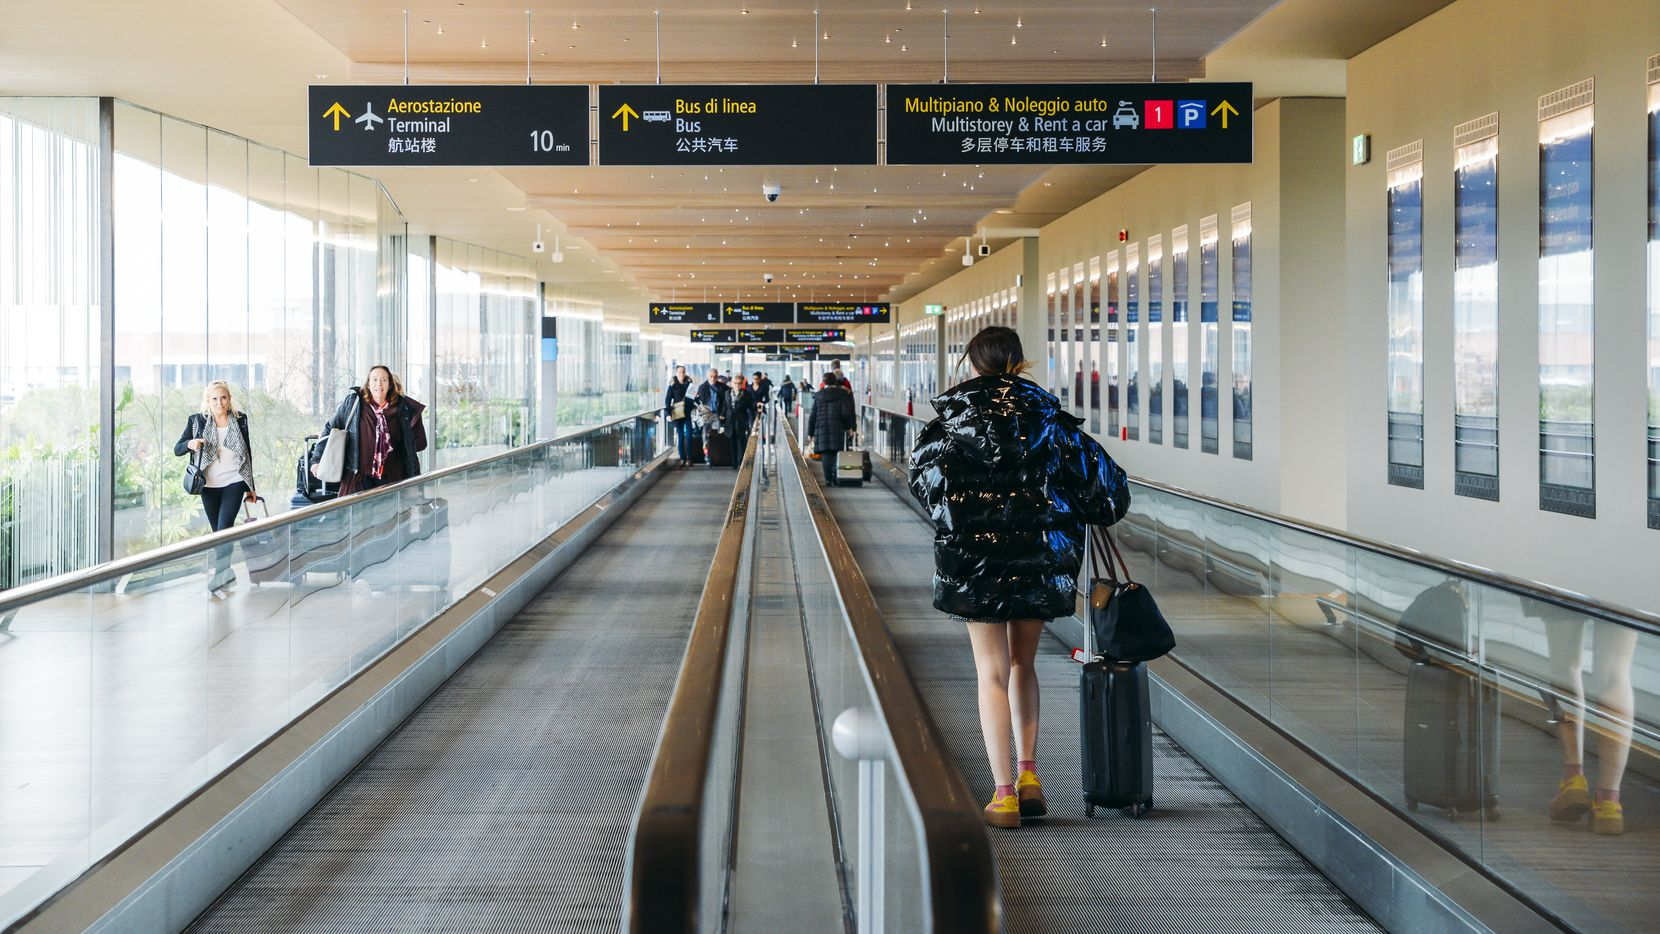 Dallas's Love Field Airport was the first airport to have moving sidewalks.